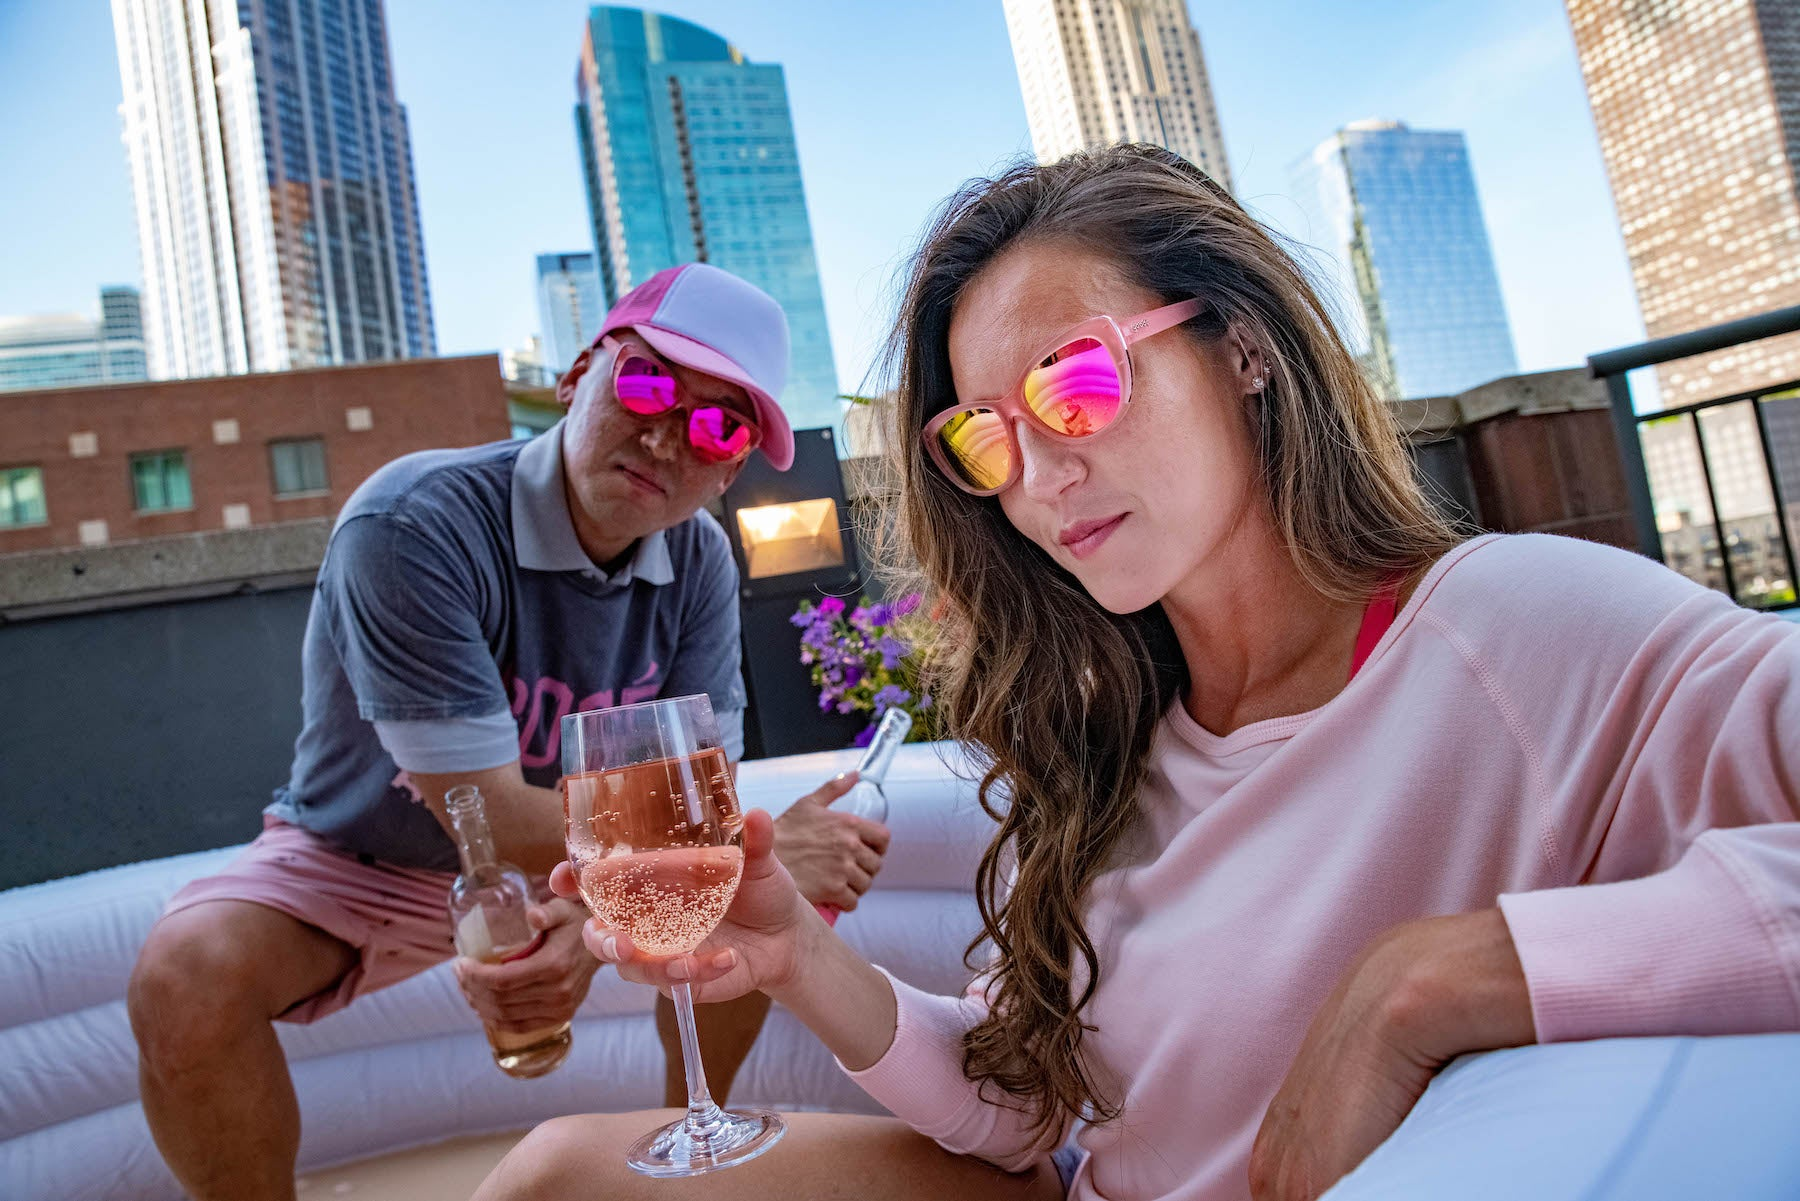 pink cateye sunglasses on man and woman drinking rose